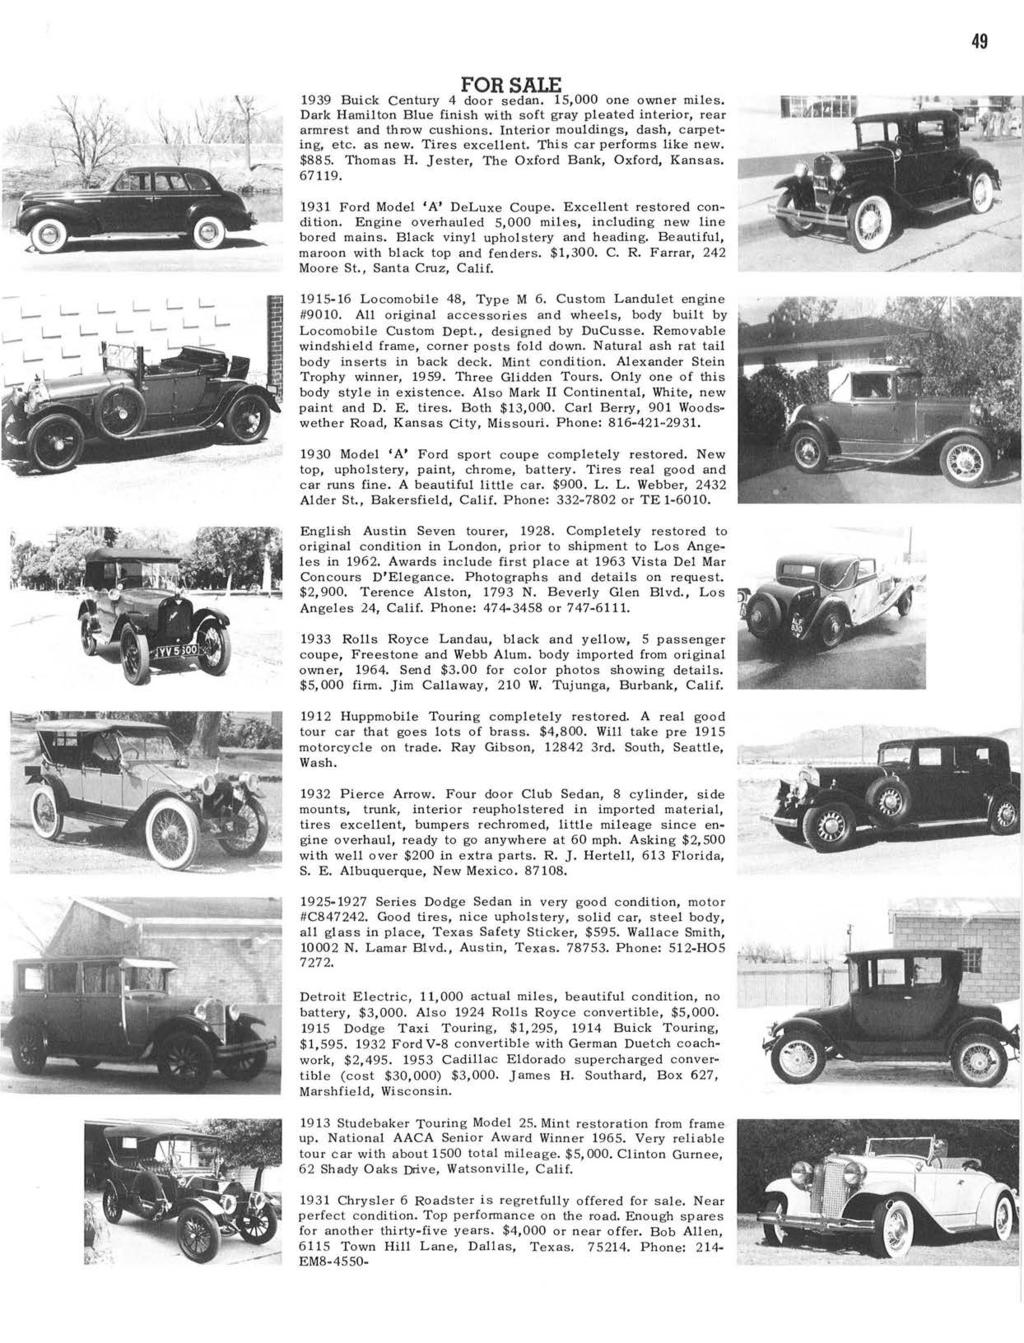 Horseless Carriage Club Of America Founded In Los Angeles November Power Top Wiring Diagram For 1942 47 Chevrolet Passenger Cars Cabriolet 49 Sale 1939 Buick Century 4 Door Sedan 15000 One Owner Miles Dark